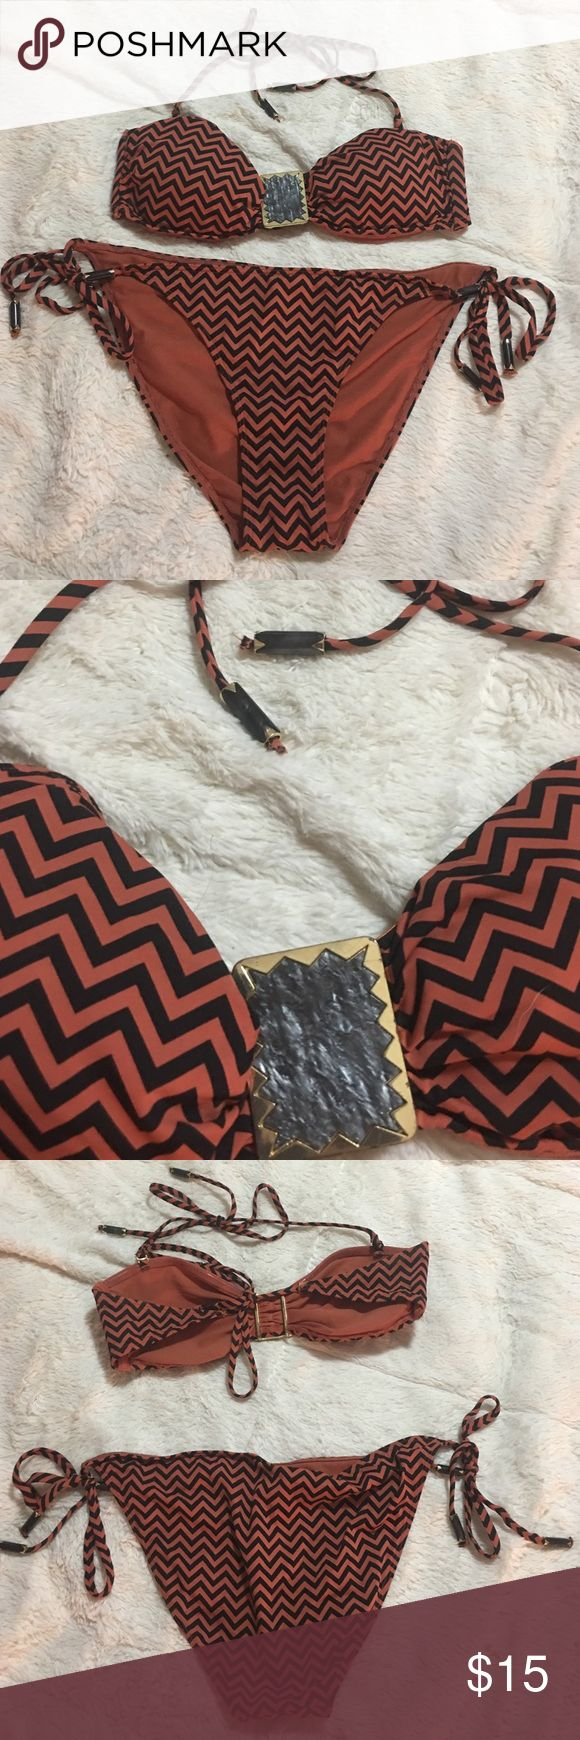 H&M brown black chevron bikini Size 10&12 Selling one black and brown chevron H&M bikini. The bikini top is a size 10, has a decorative clasp upfront, and beads on end of strings. Ties around neck and back. The bikini bottoms are a size 12 and also have the beads that match the top one ends of strings. Ties on each hip. H&M Swim Bikinis